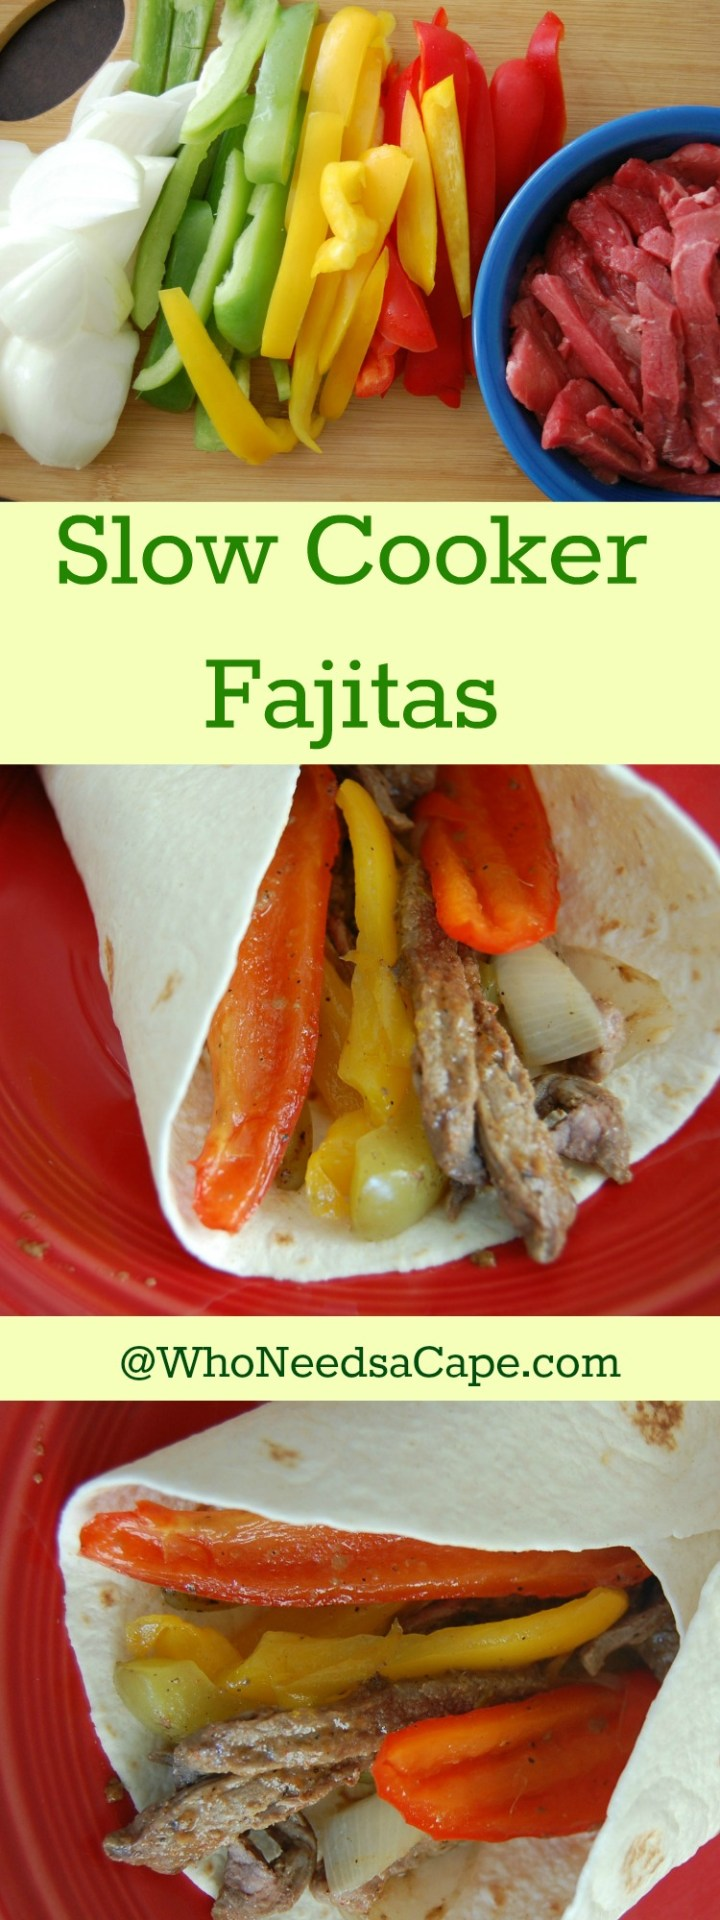 Slow Cooker Fajitas are the perfect dinner! A fantastic Freezer Meal - Part of 40 meals in 4 hours. Tasty and Easy